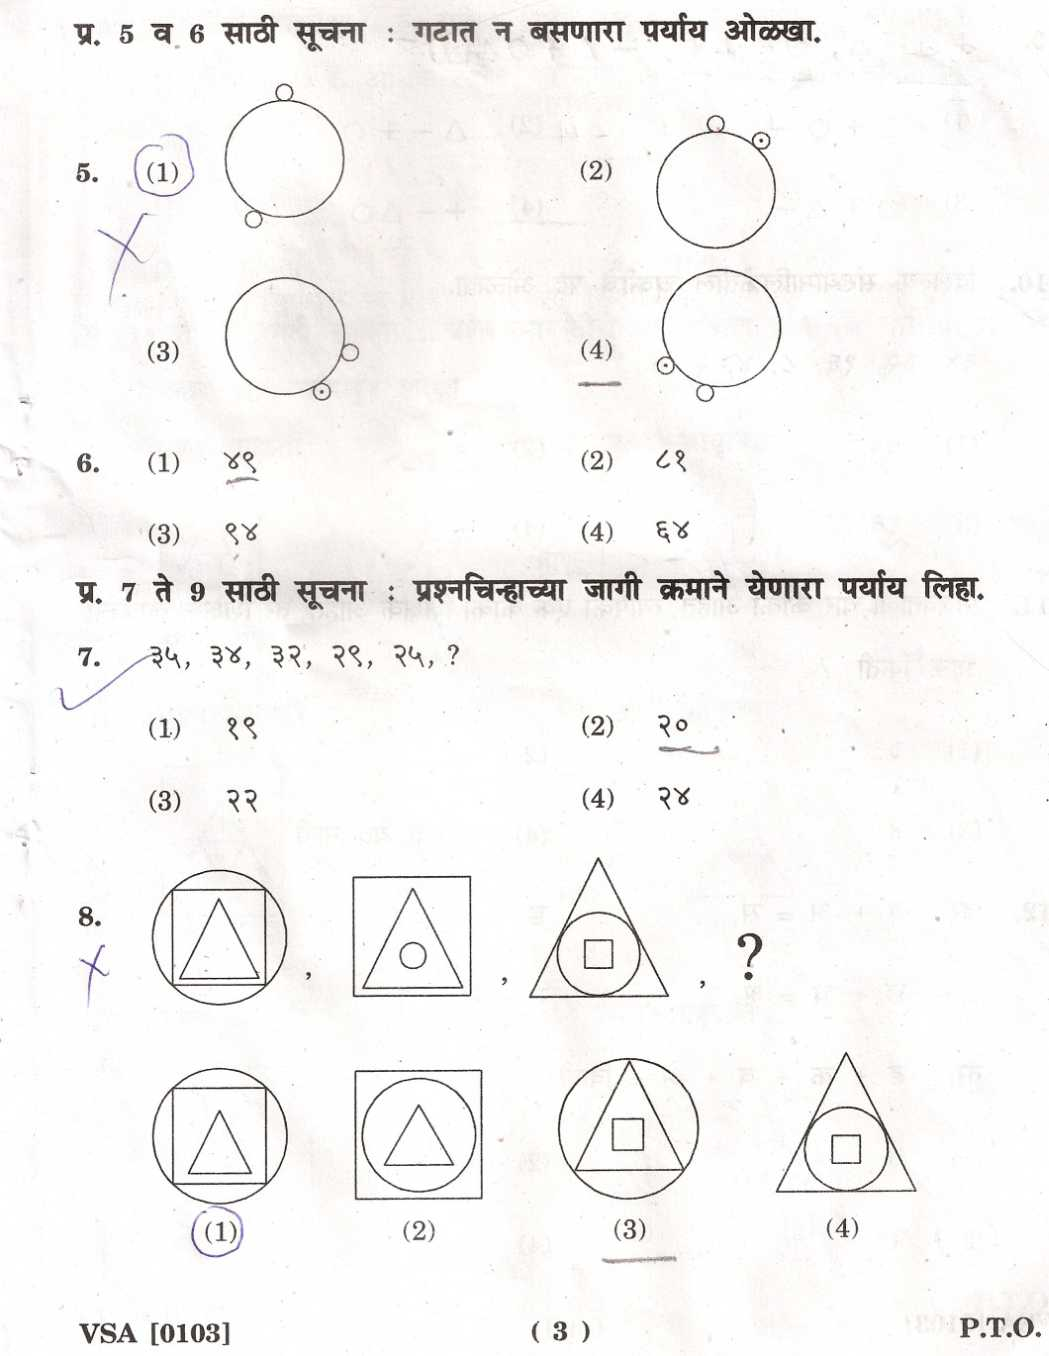 Previous question papers of 4th Standard Scholarship exam